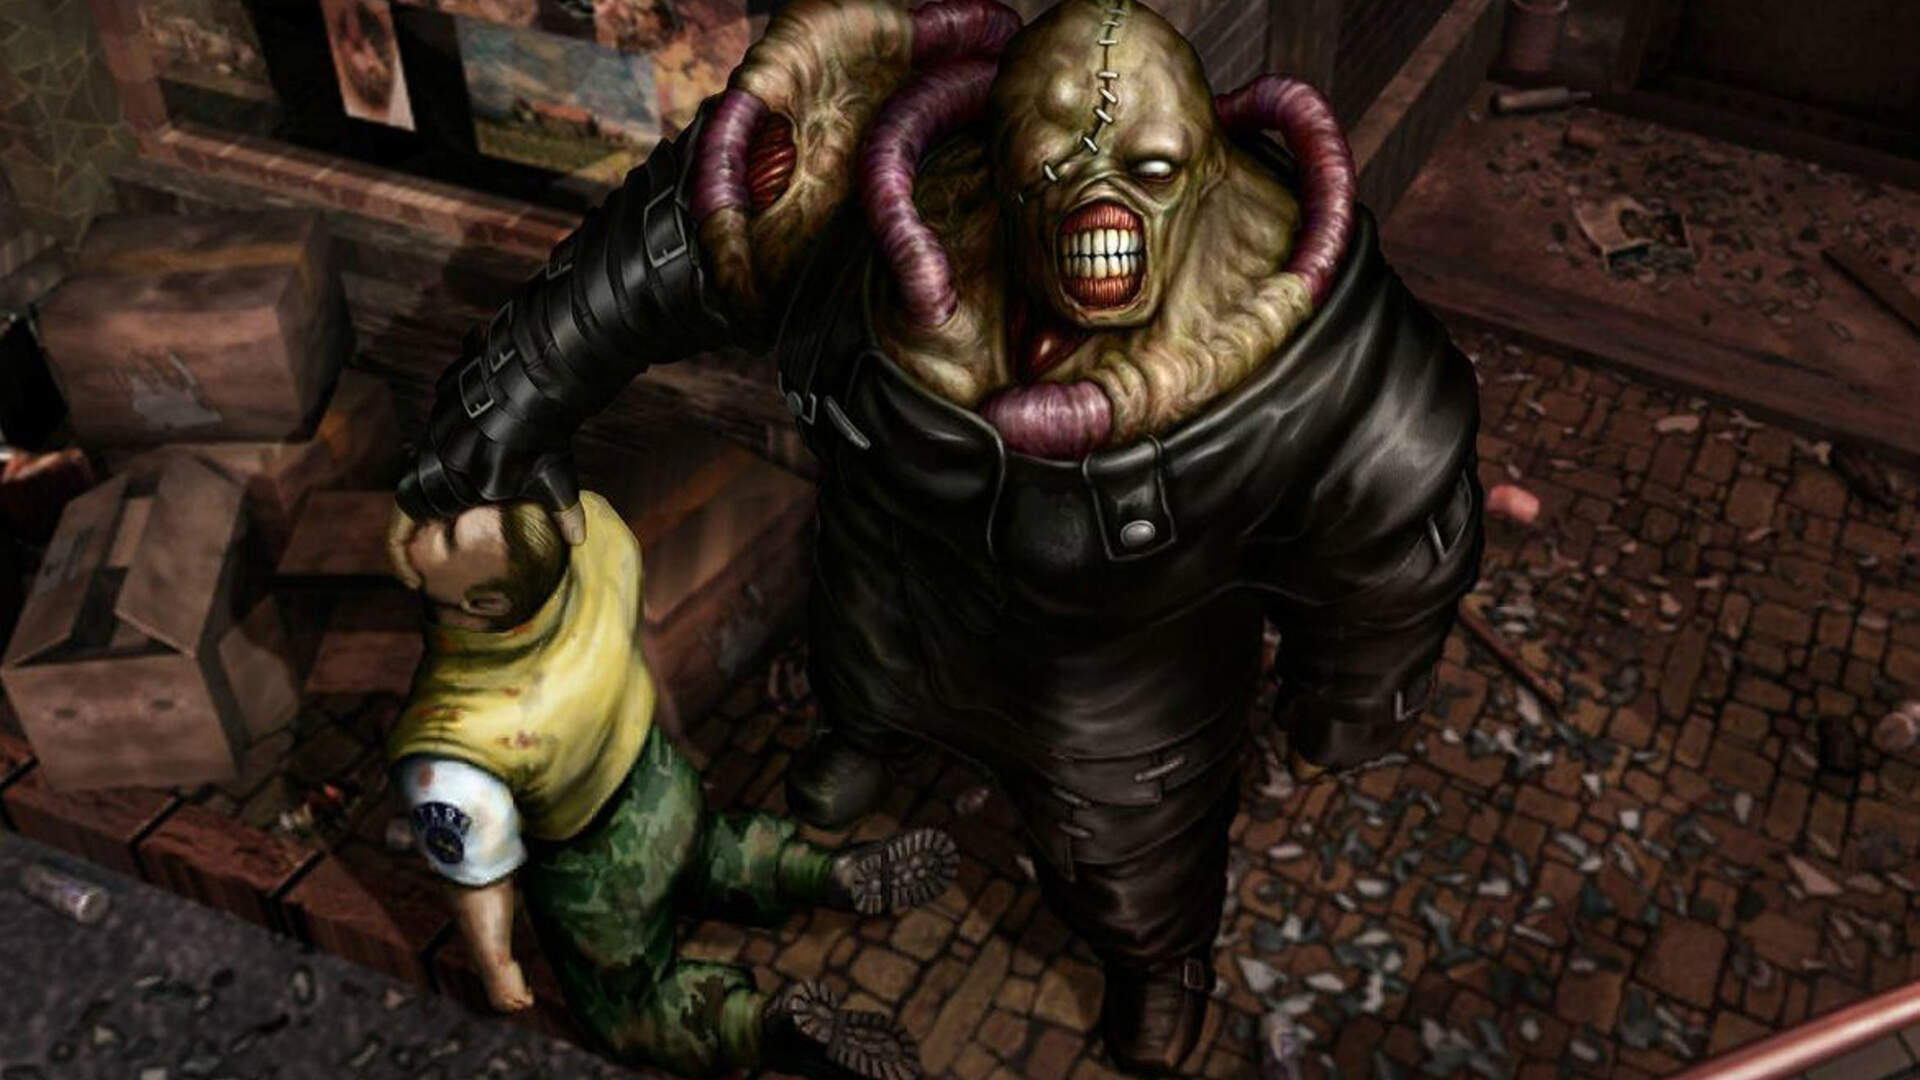 How a Resident Evil 3 Remake Could Be Even Better Than Resident Evil 2